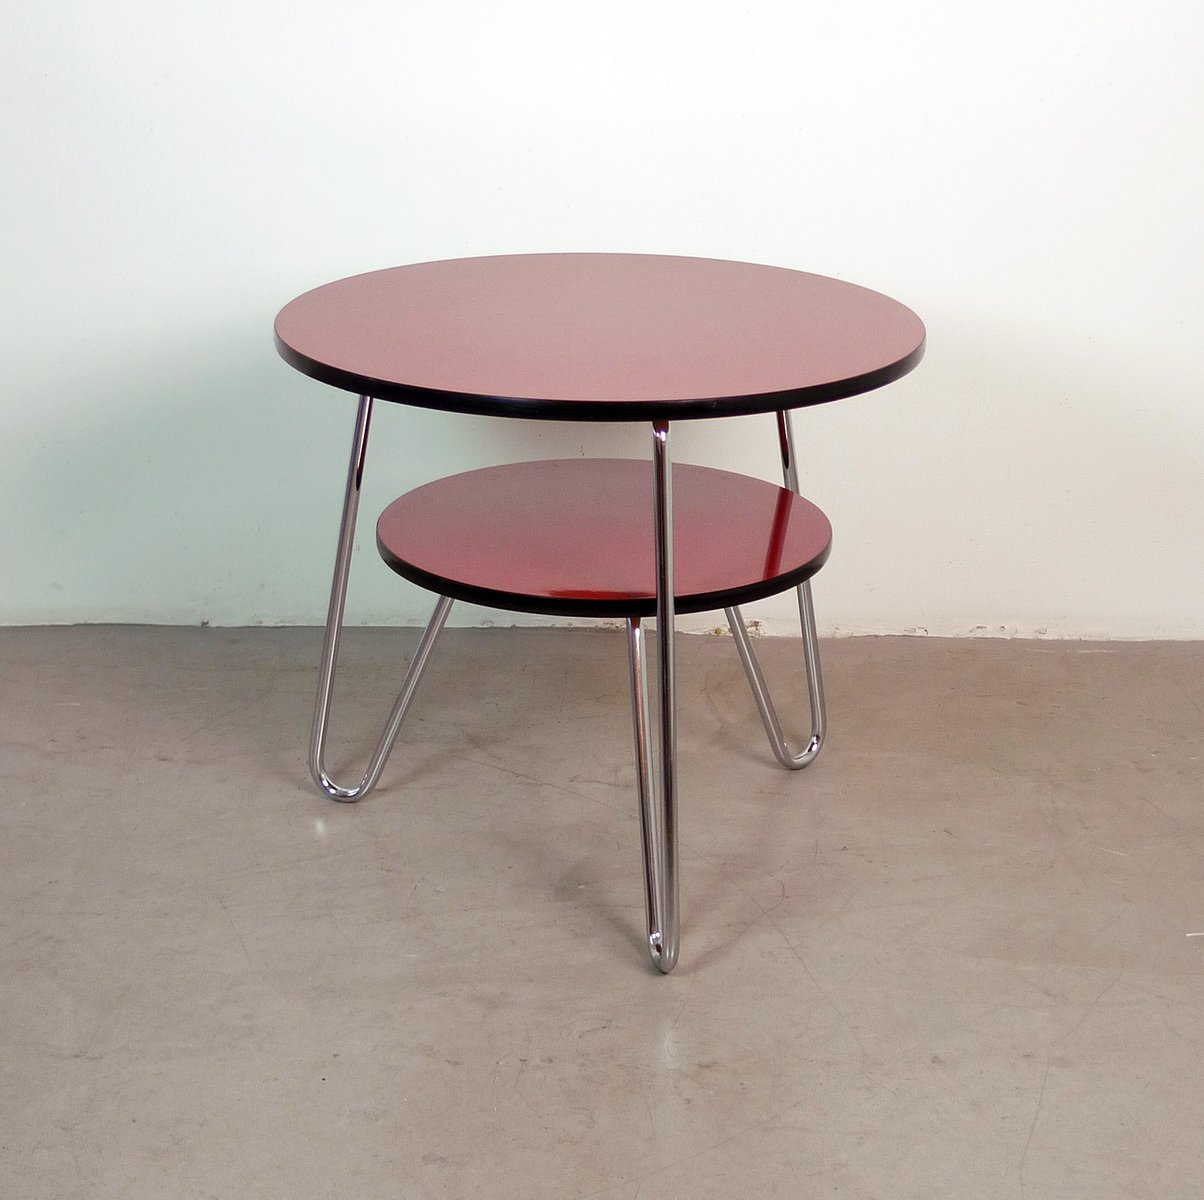 German Round Double Tiered Coffee Table 1950s For Sale At Pamono